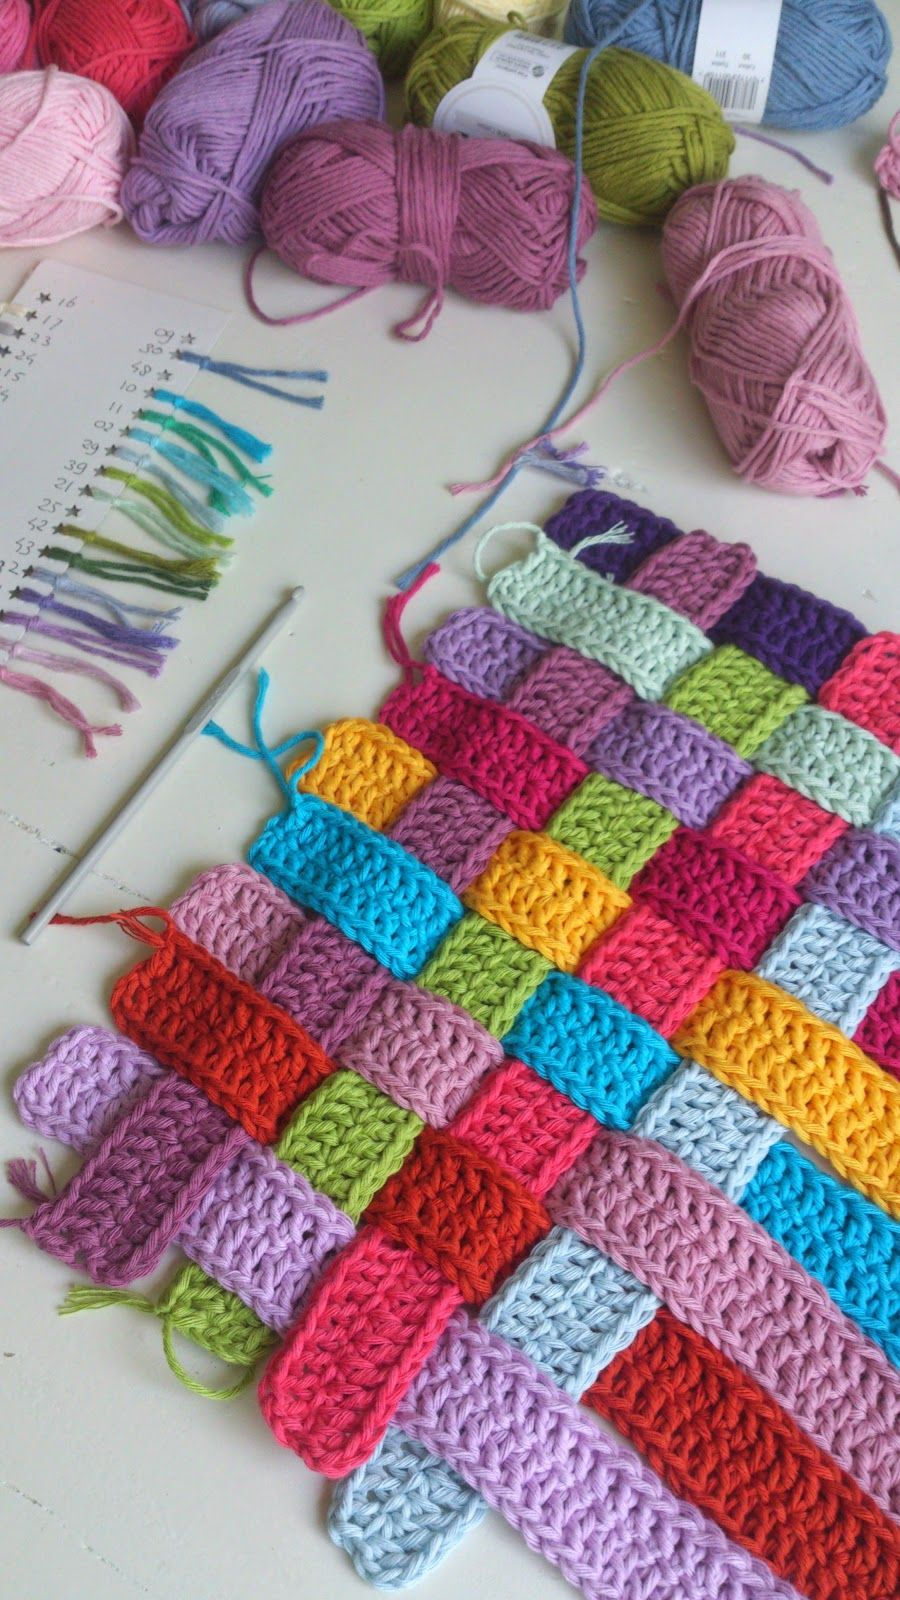 Crochet new project.... https://www.facebook.com/pages/Attys ...